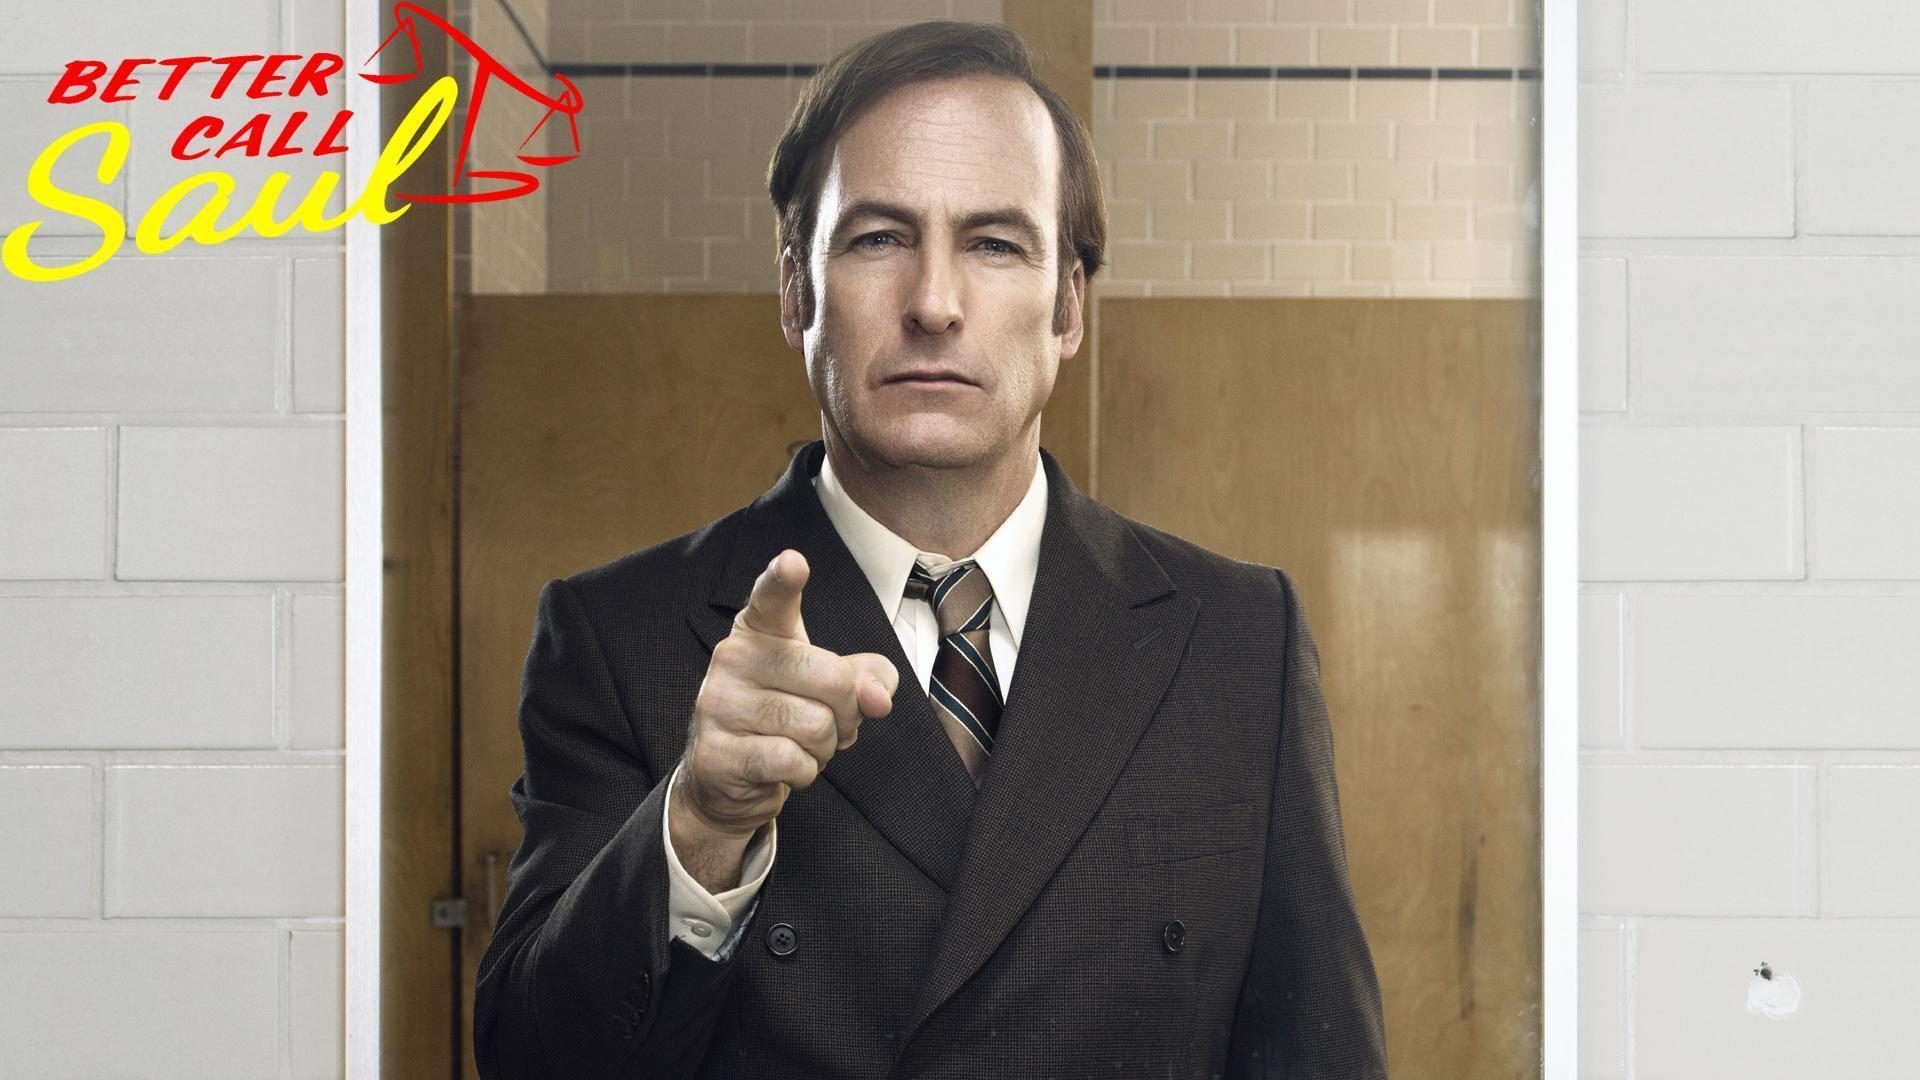 I created some better Call Saul! wallpapers : betterCallSaul